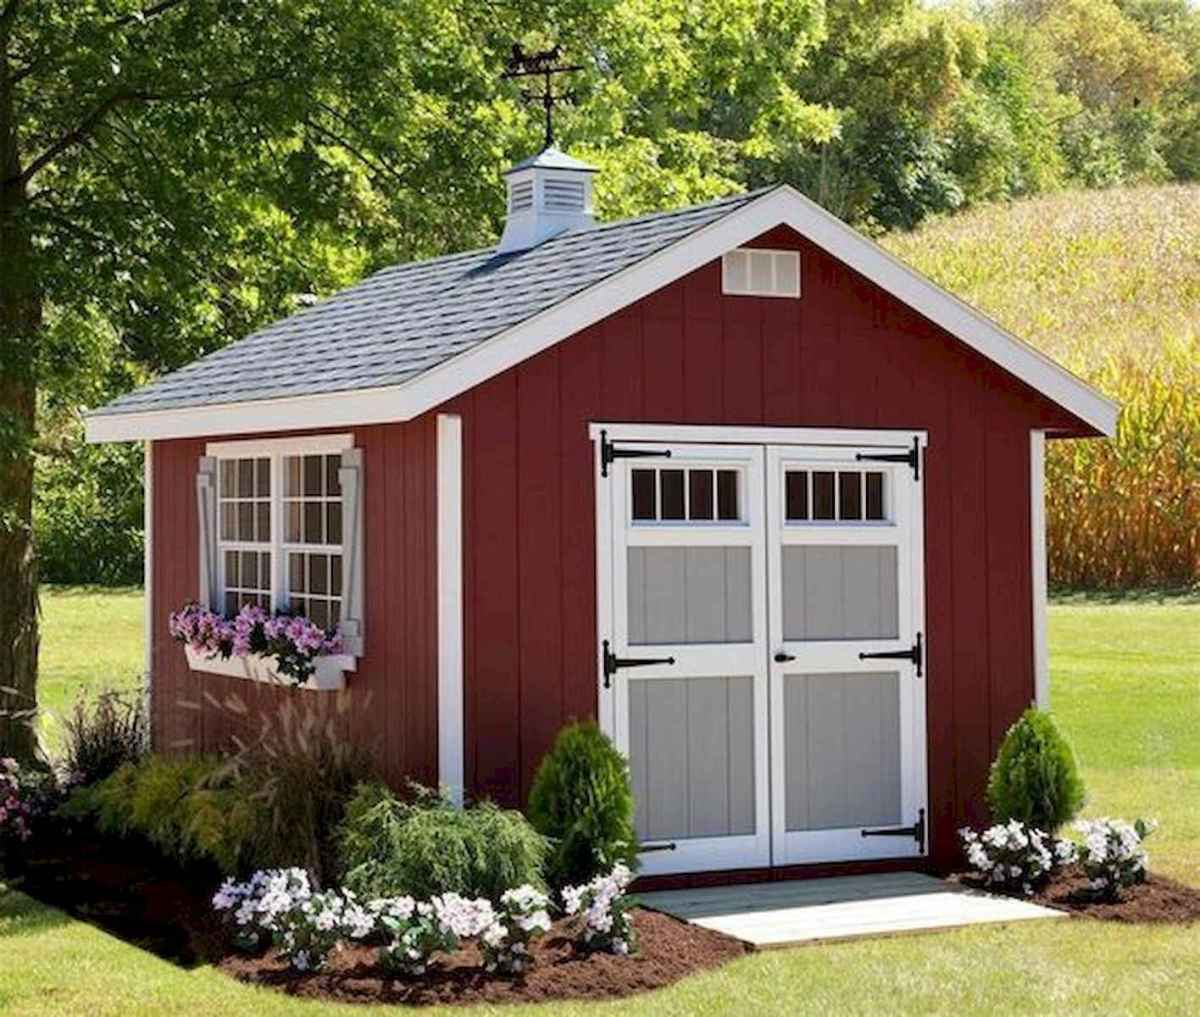 60 Beautiful Tiny House Plans Small Cottages Design Ideas (31)